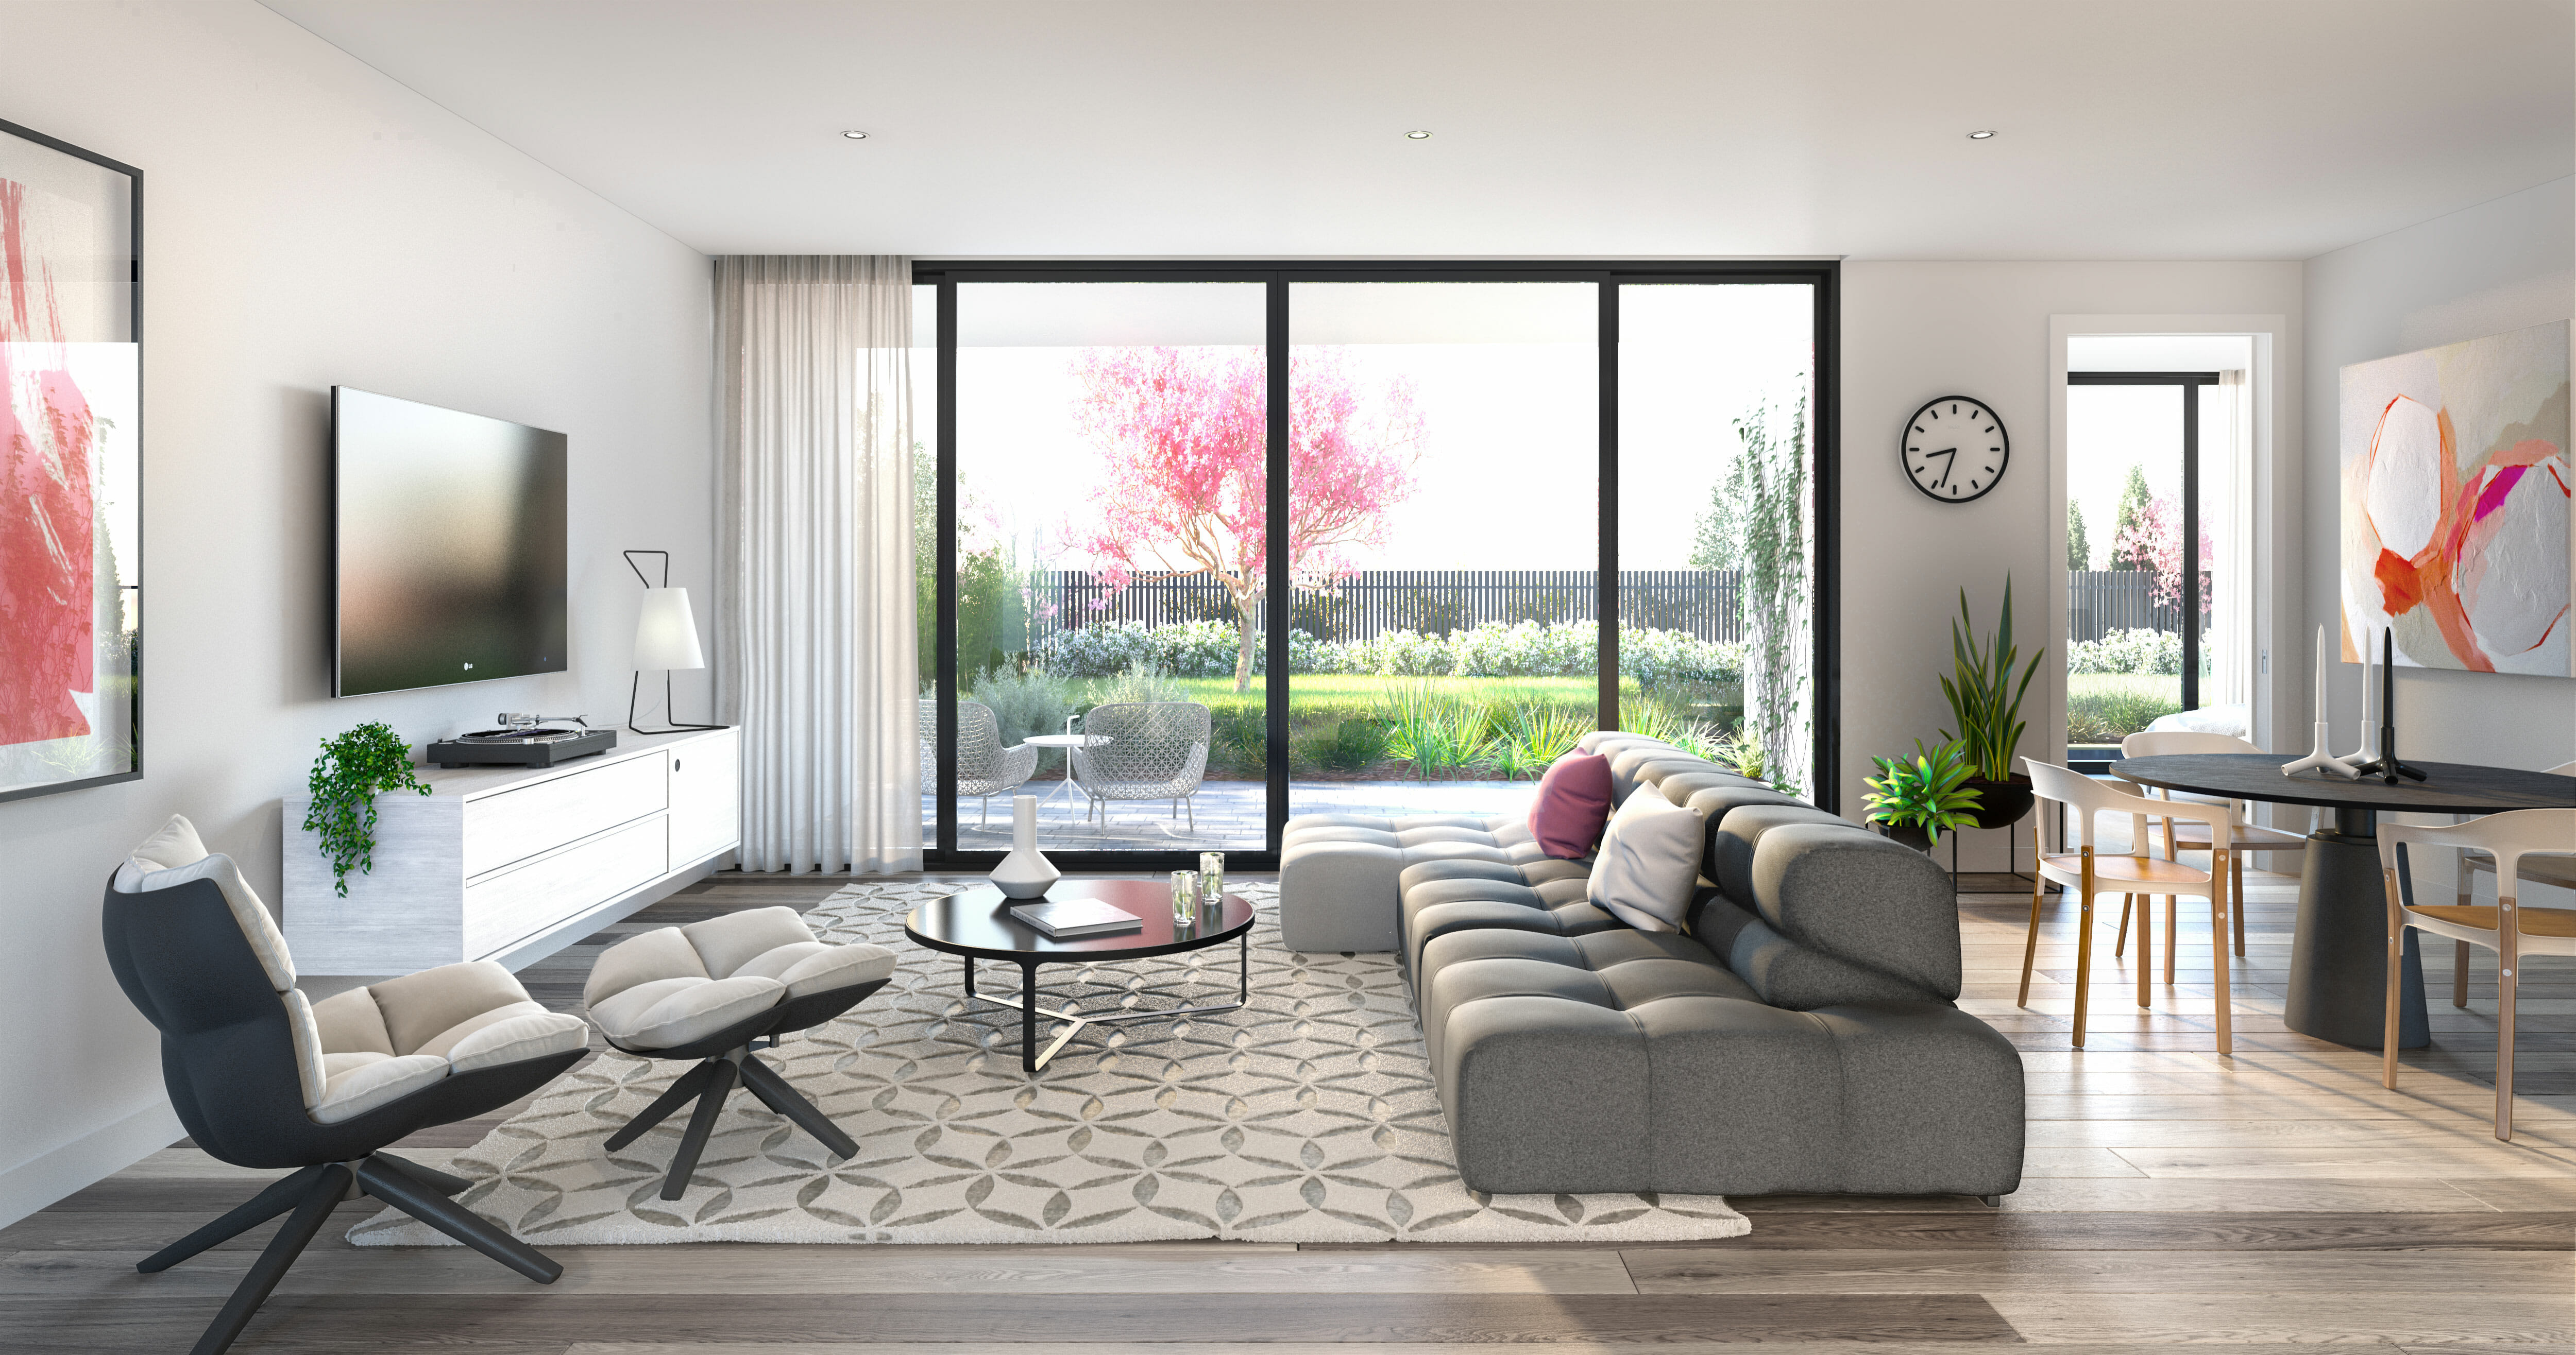 Interior 3d Render living room and garden, cherry blossom